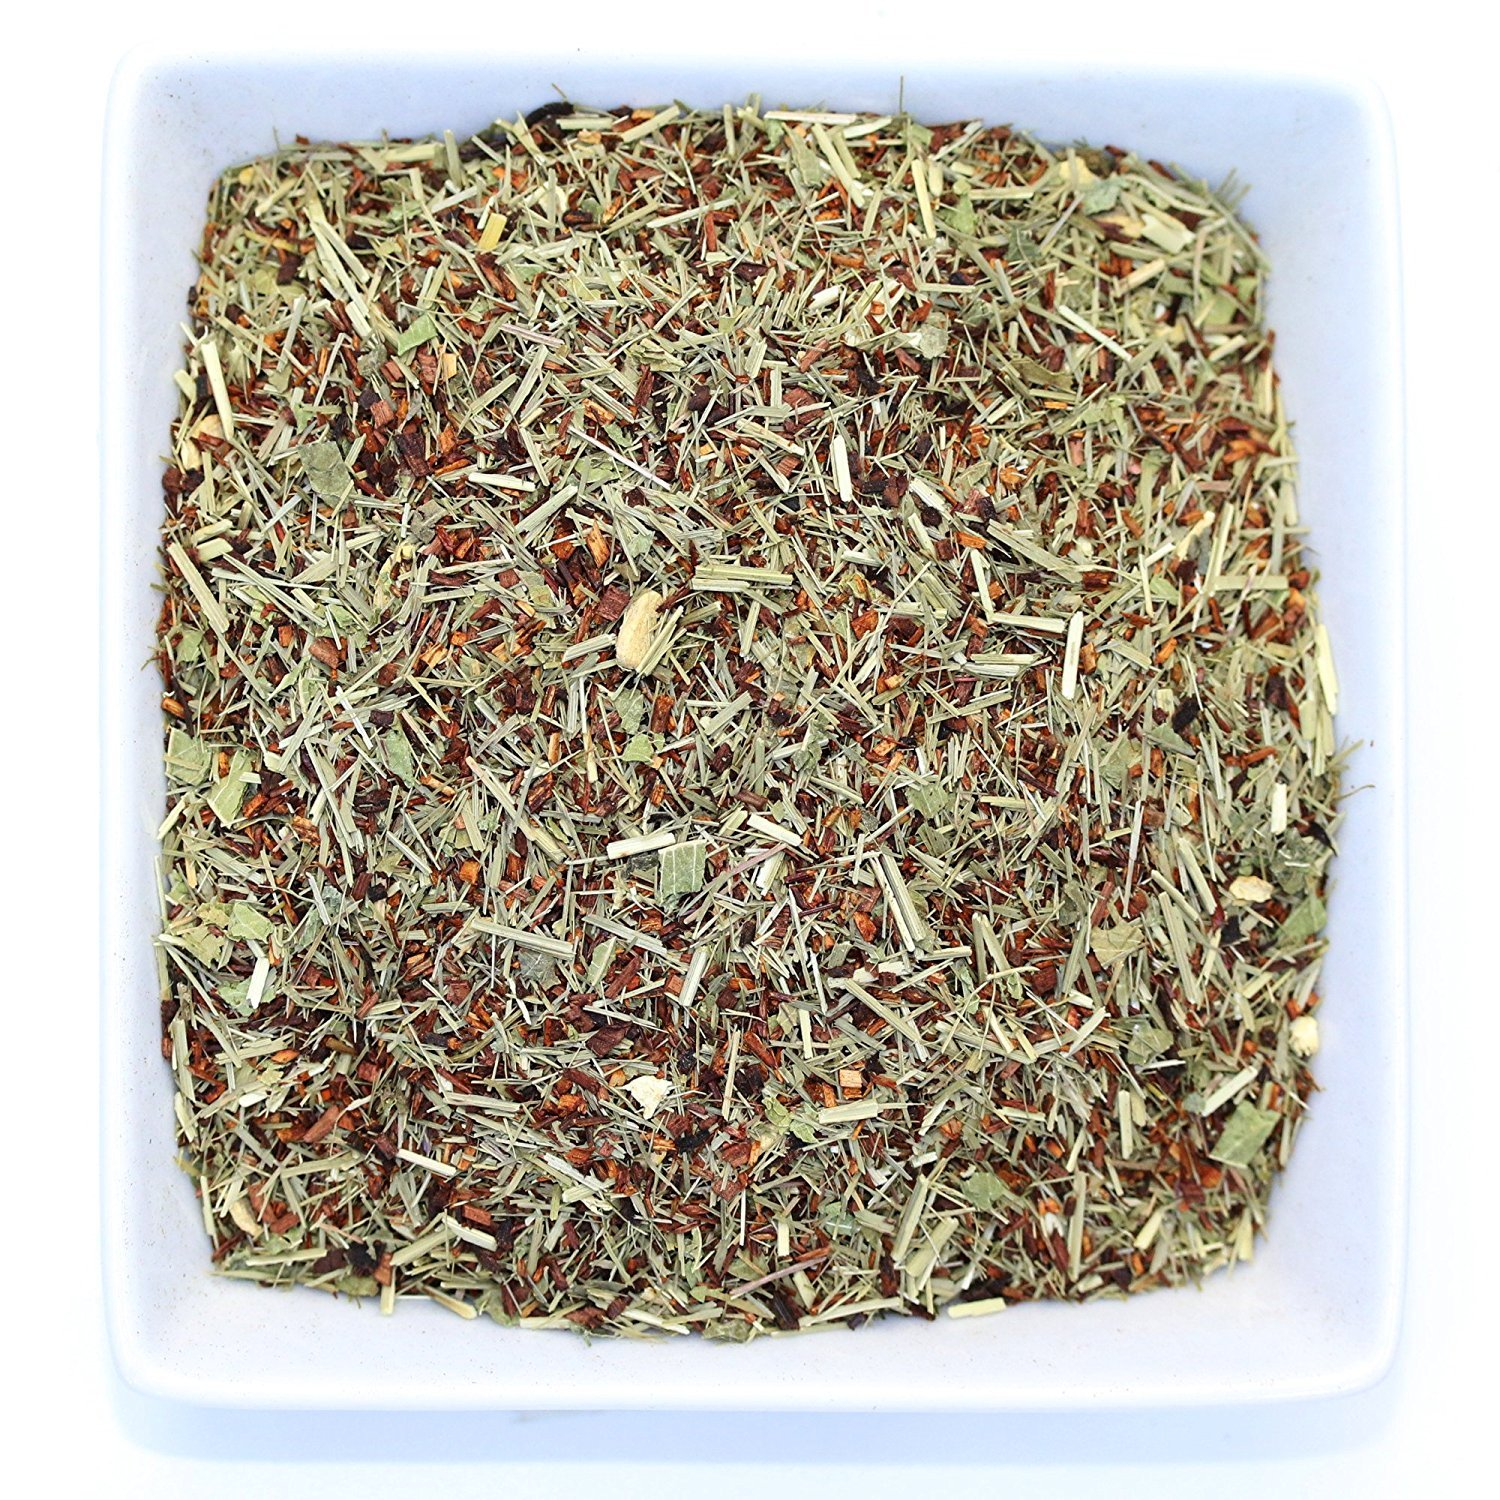 Tealyra - French Lemon Ginger - Rooibos - Honeybush - Lemongrass - Red Bush Herbal Loose Leaf Tea Blend - All Natural Ingredients - High Antioxidants - Caffeine-Free - 110g (4-ounce)